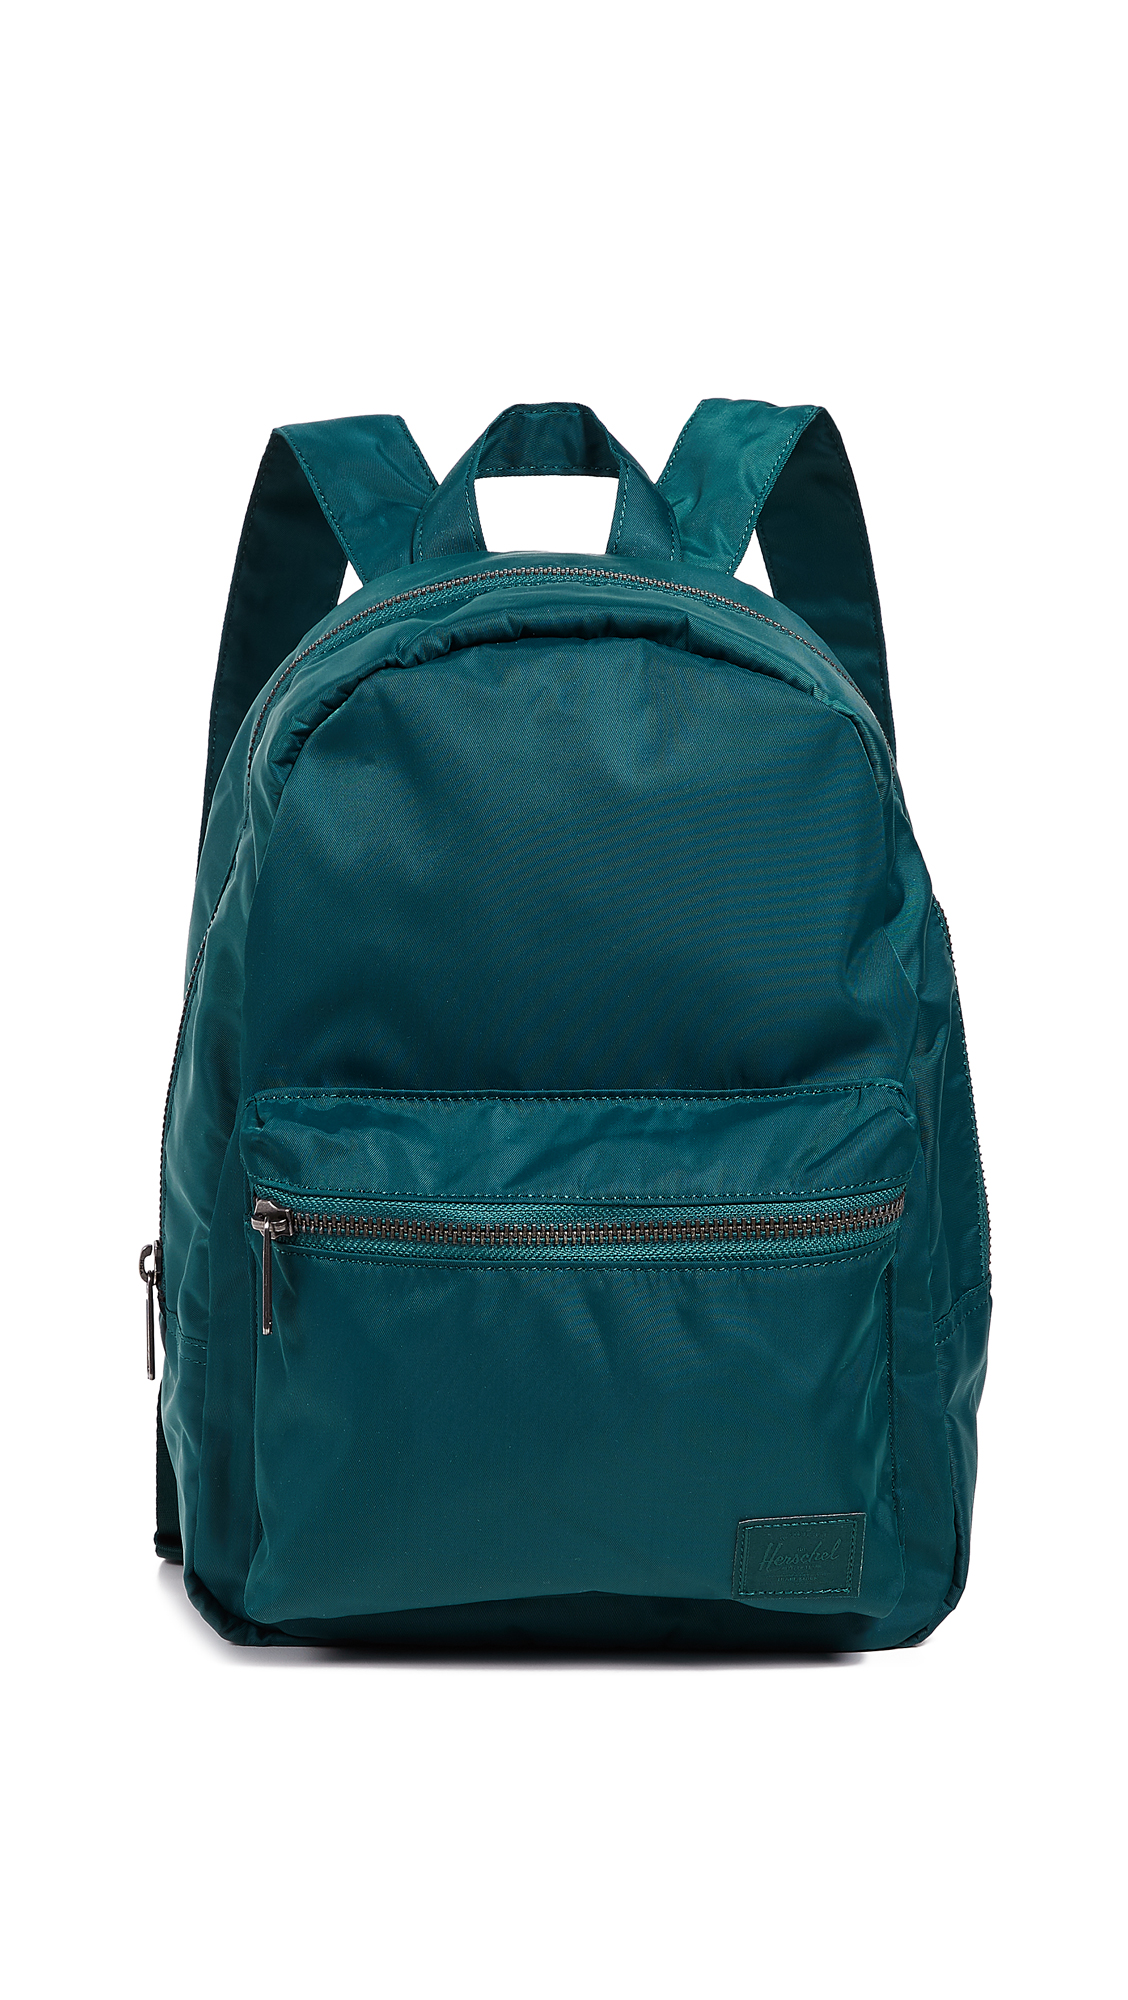 Flight Satin Grove X Small Backpack in Deep Teal